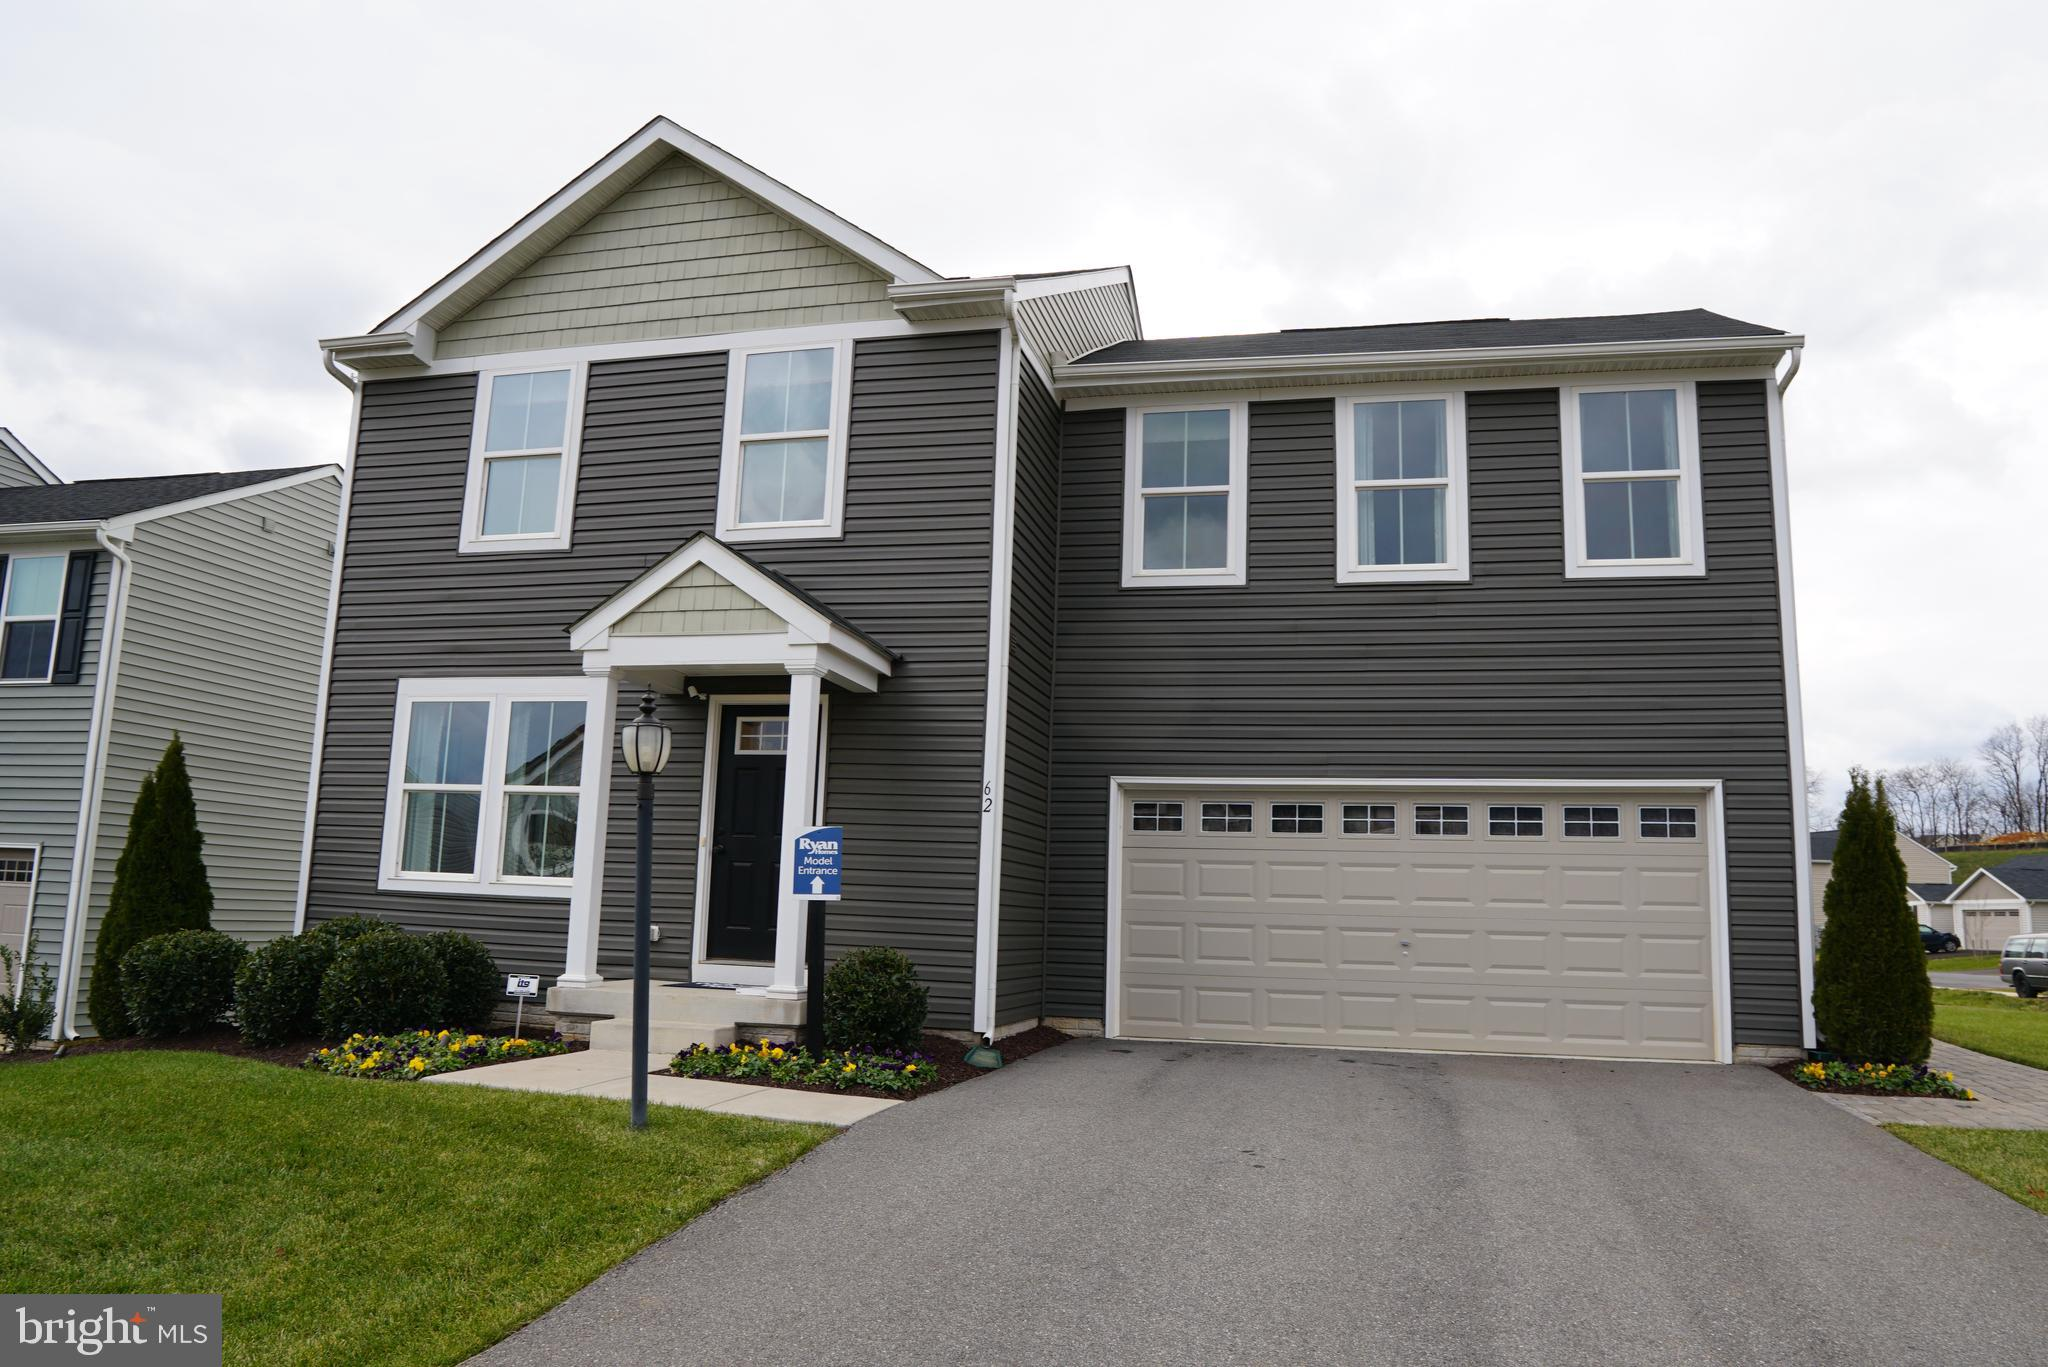 This 4bd, 2.5ba MODEL home is ready for you to call it home!  With an open floor plan concept, this